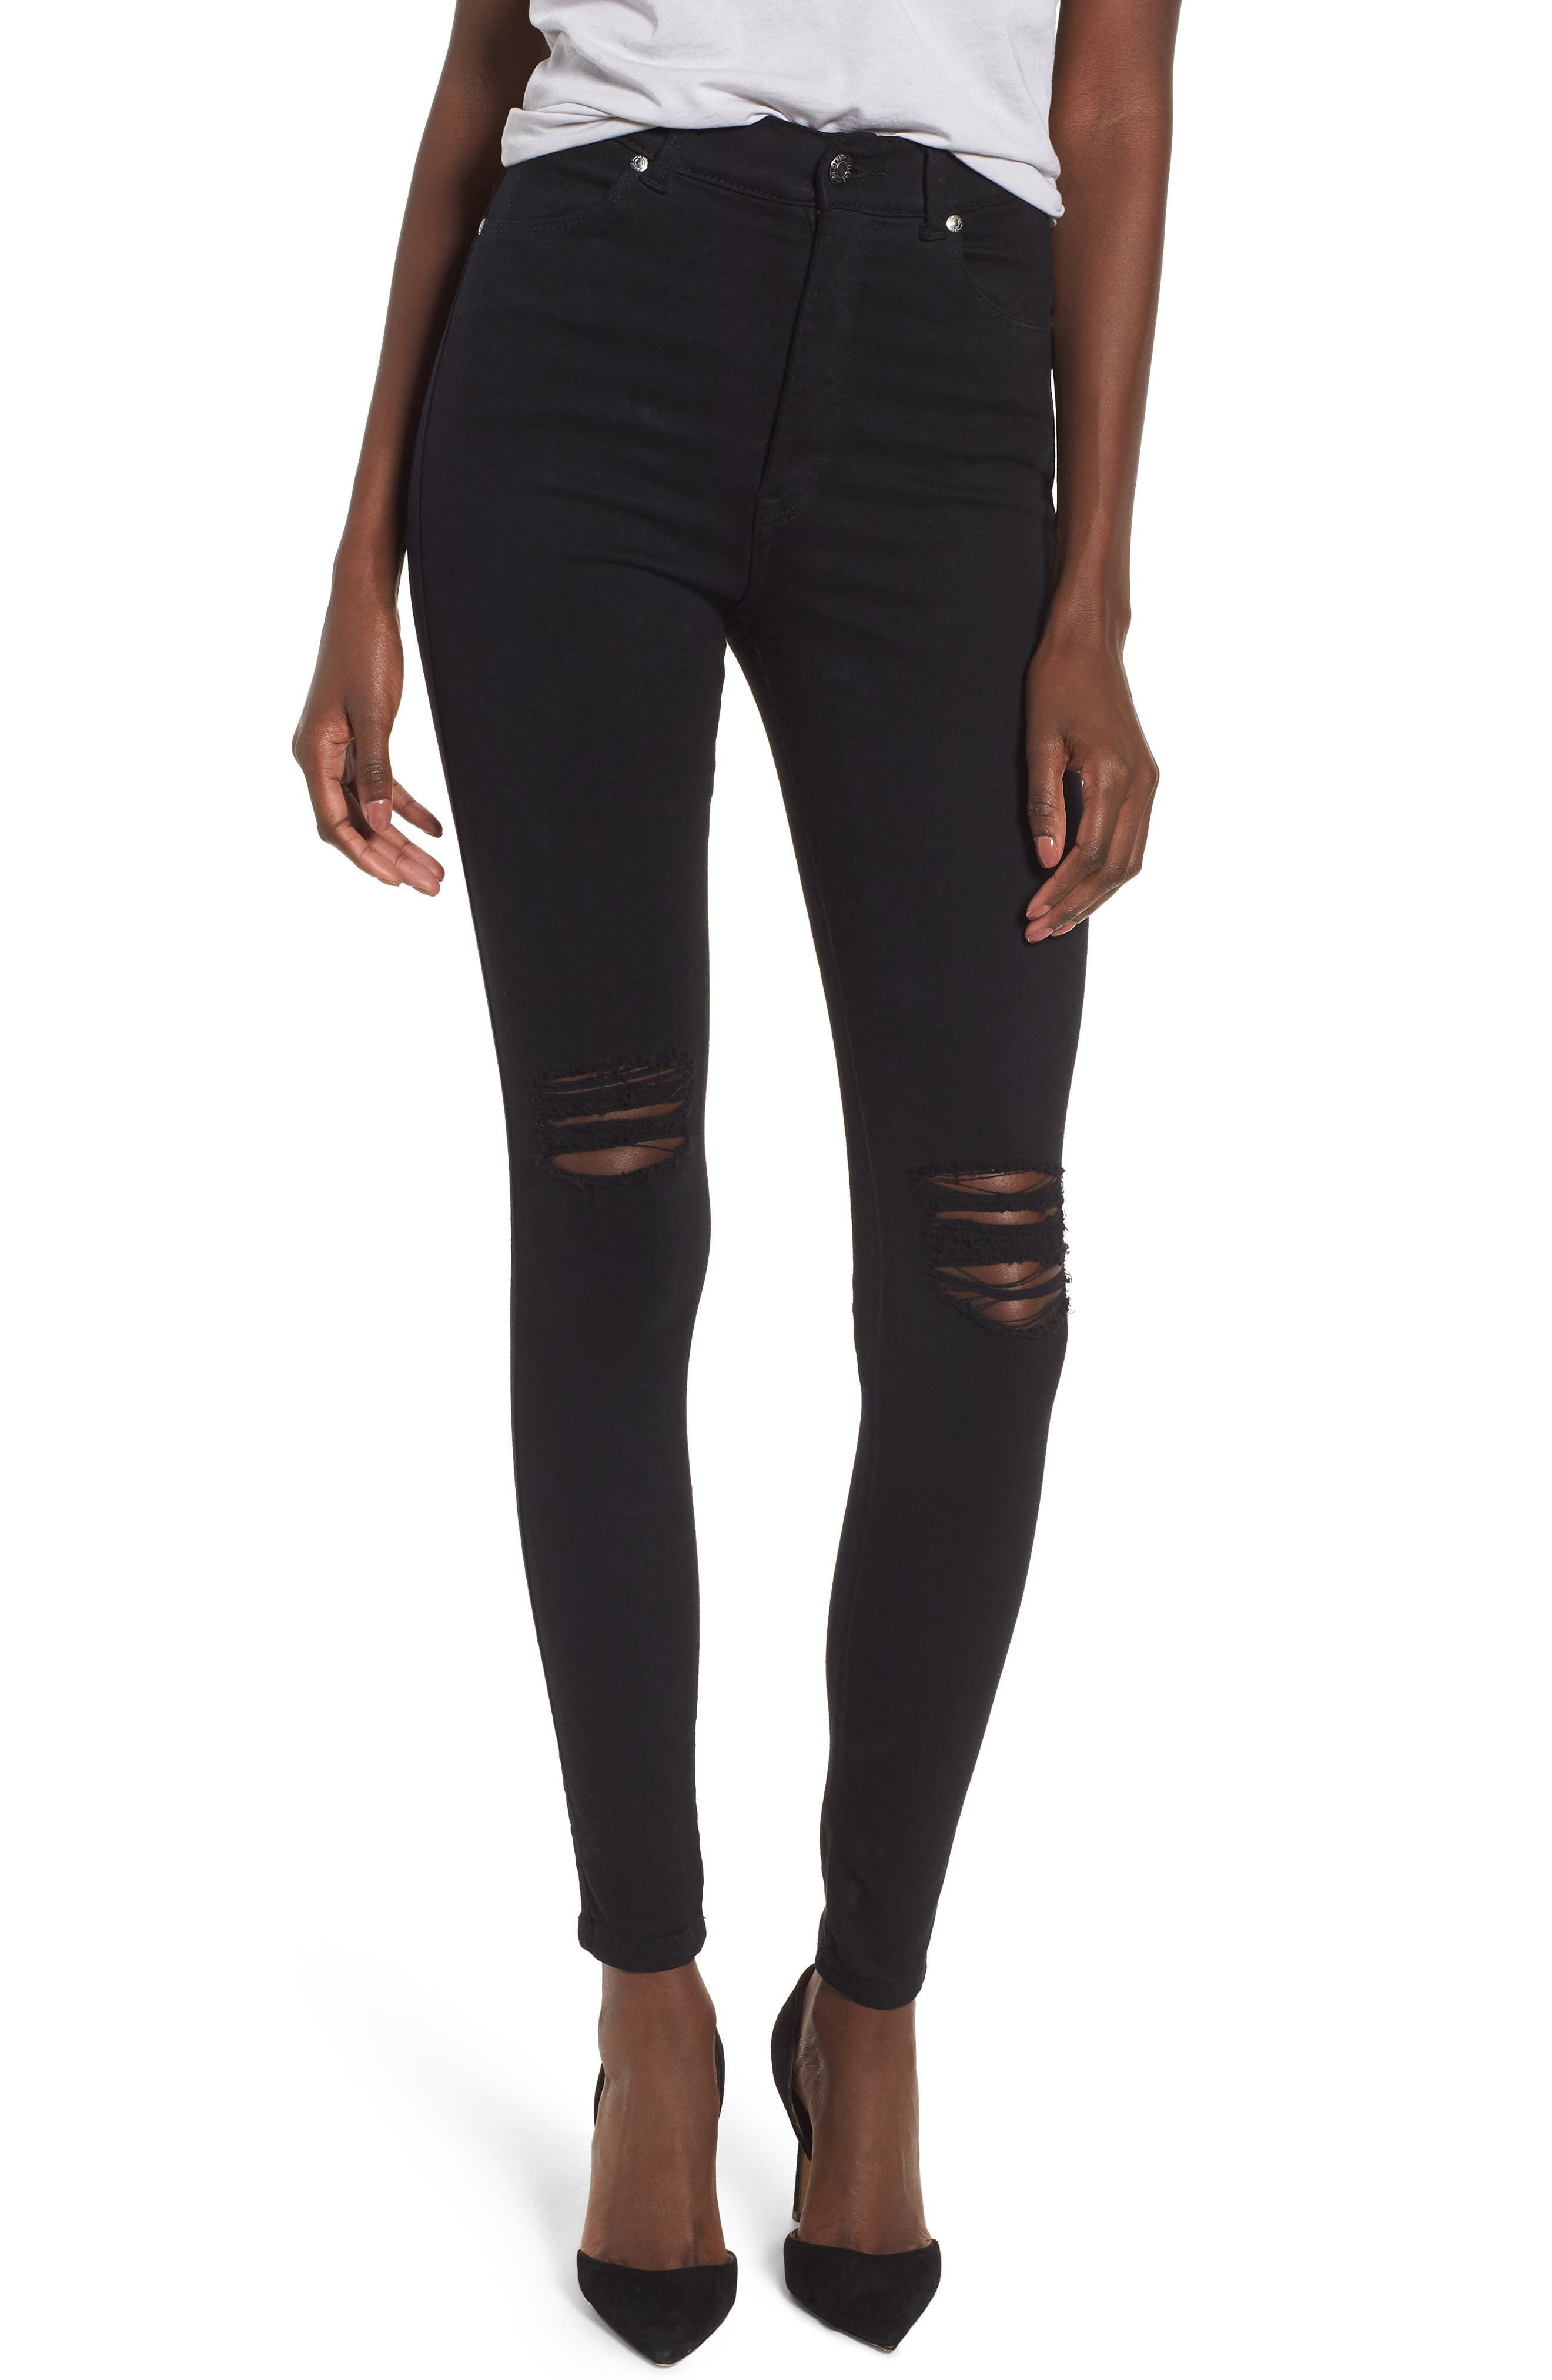 Moxy Ripped Knee Skinny Jeans,                         Main,                         color, Black